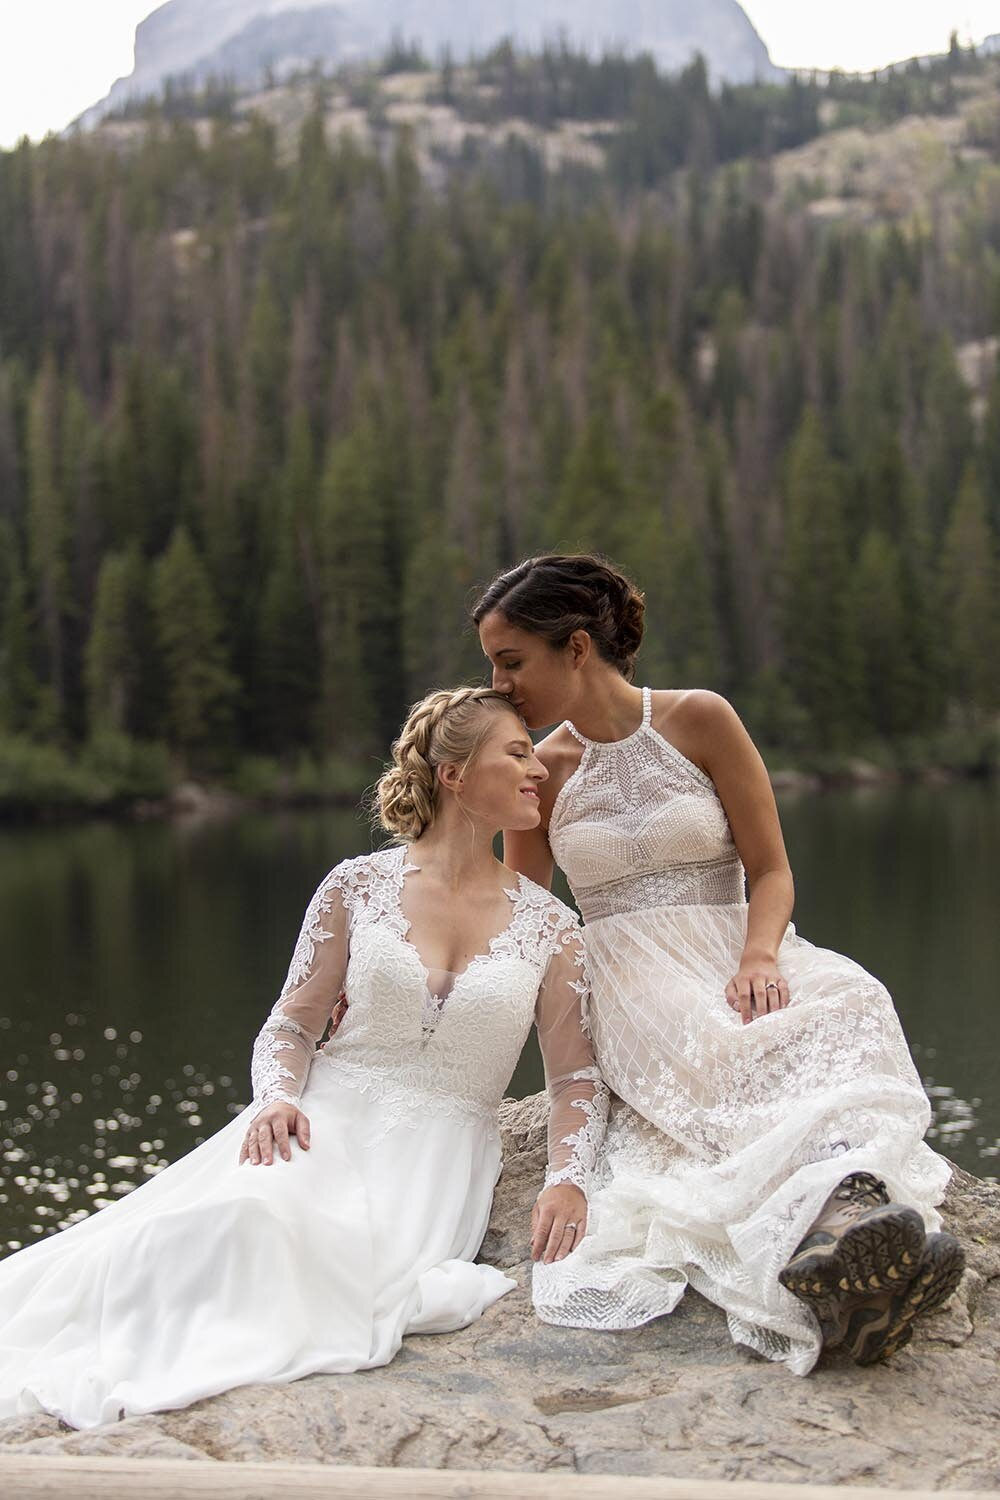 2020RockyMountainNationalParkKelseyAlexElopement004